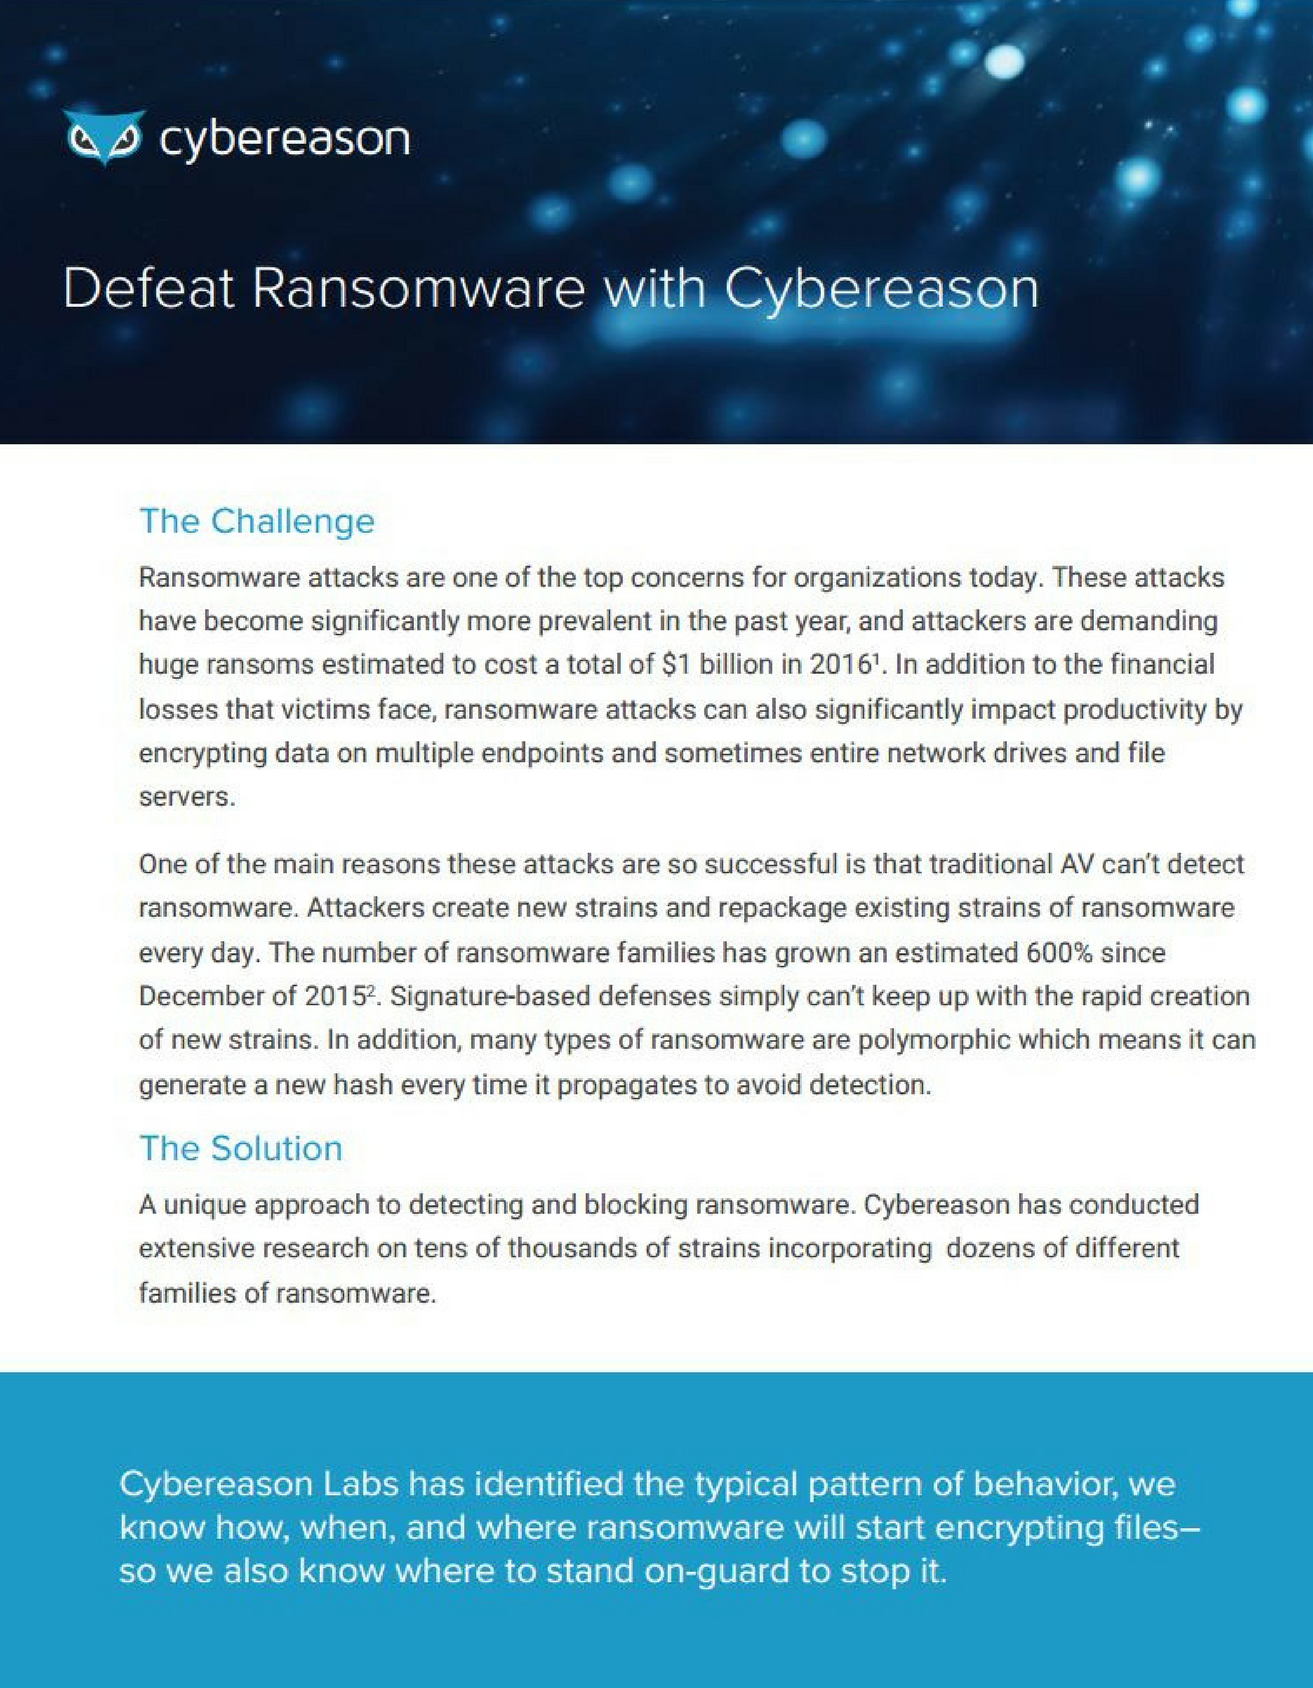 Defeating Ransomware with Cybereason